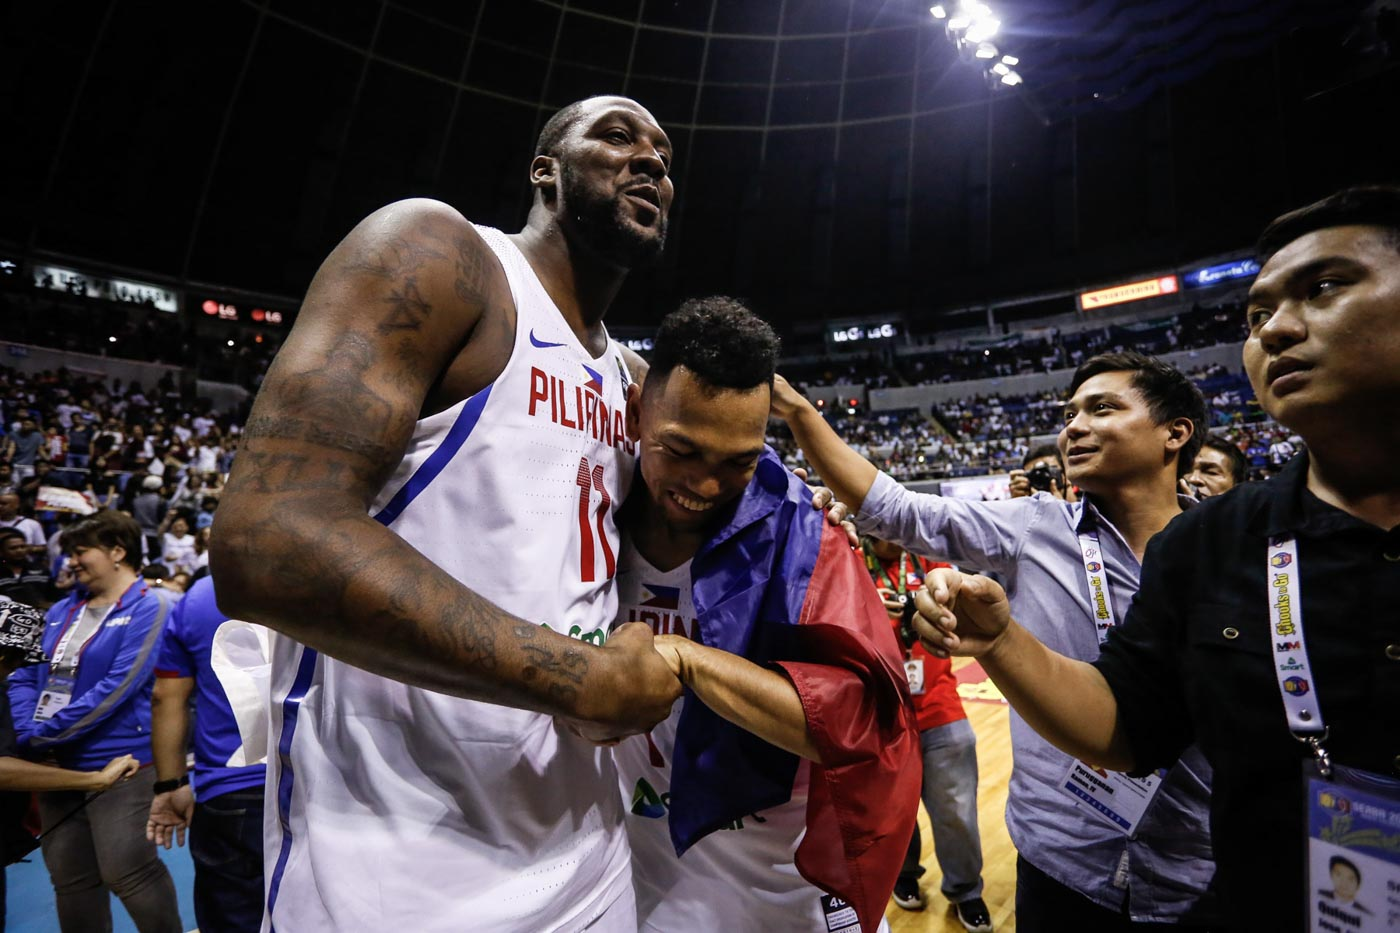 BROTHERS. Andray Blatche and Jayson Castro hug each other. Photo by Josh Albelda/Rappler